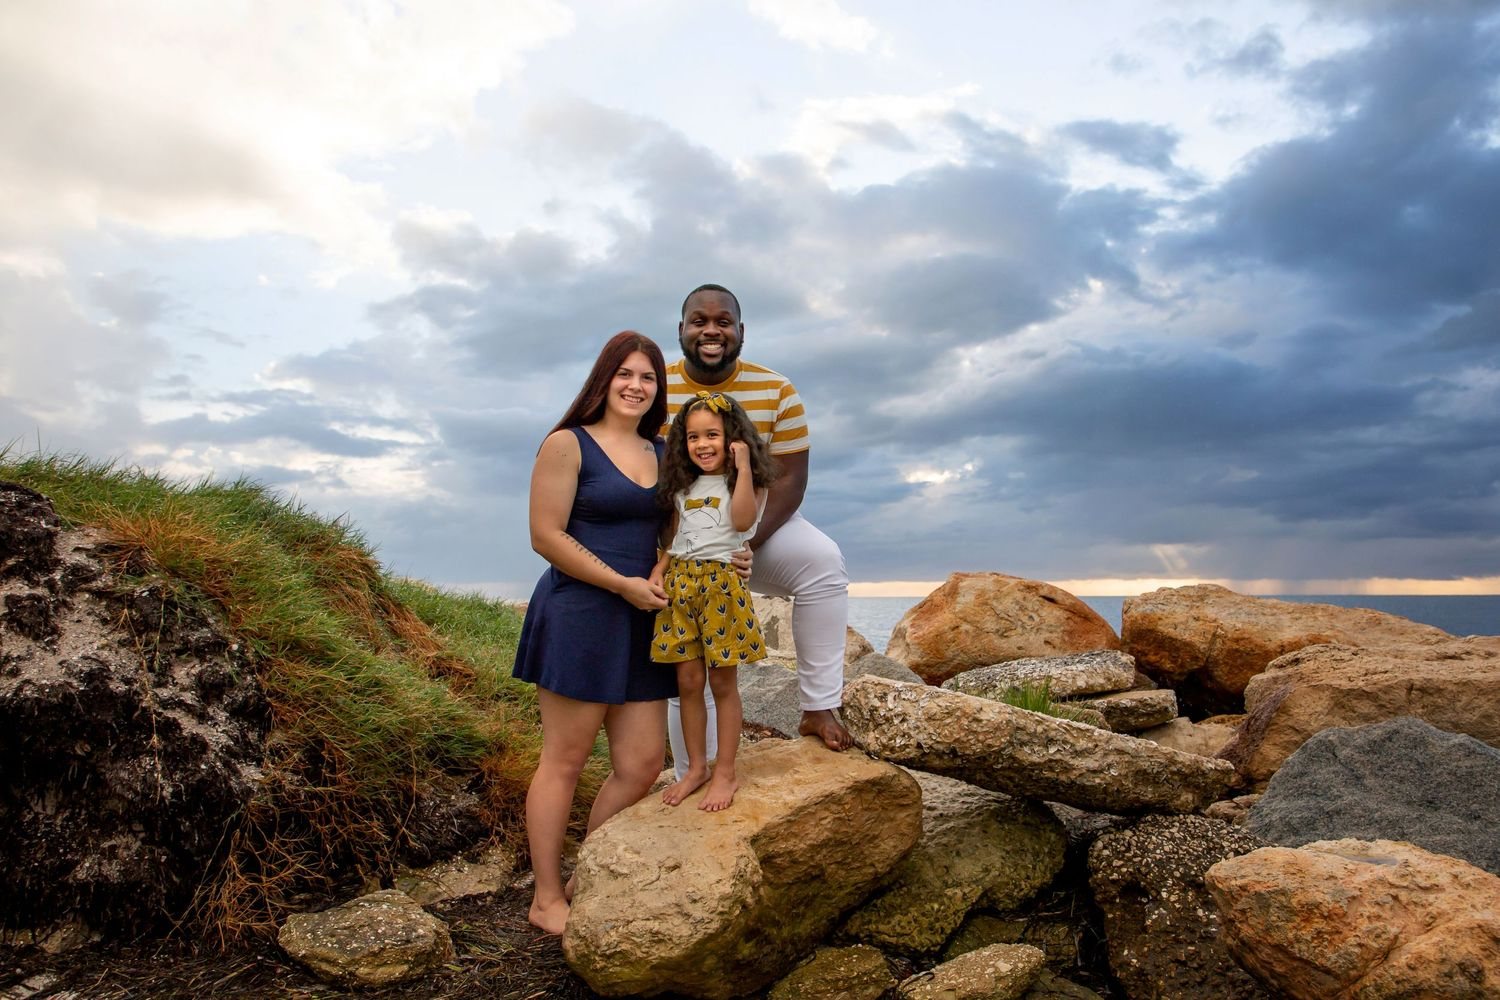 abundant grace photography, family photography, affordable beach photography